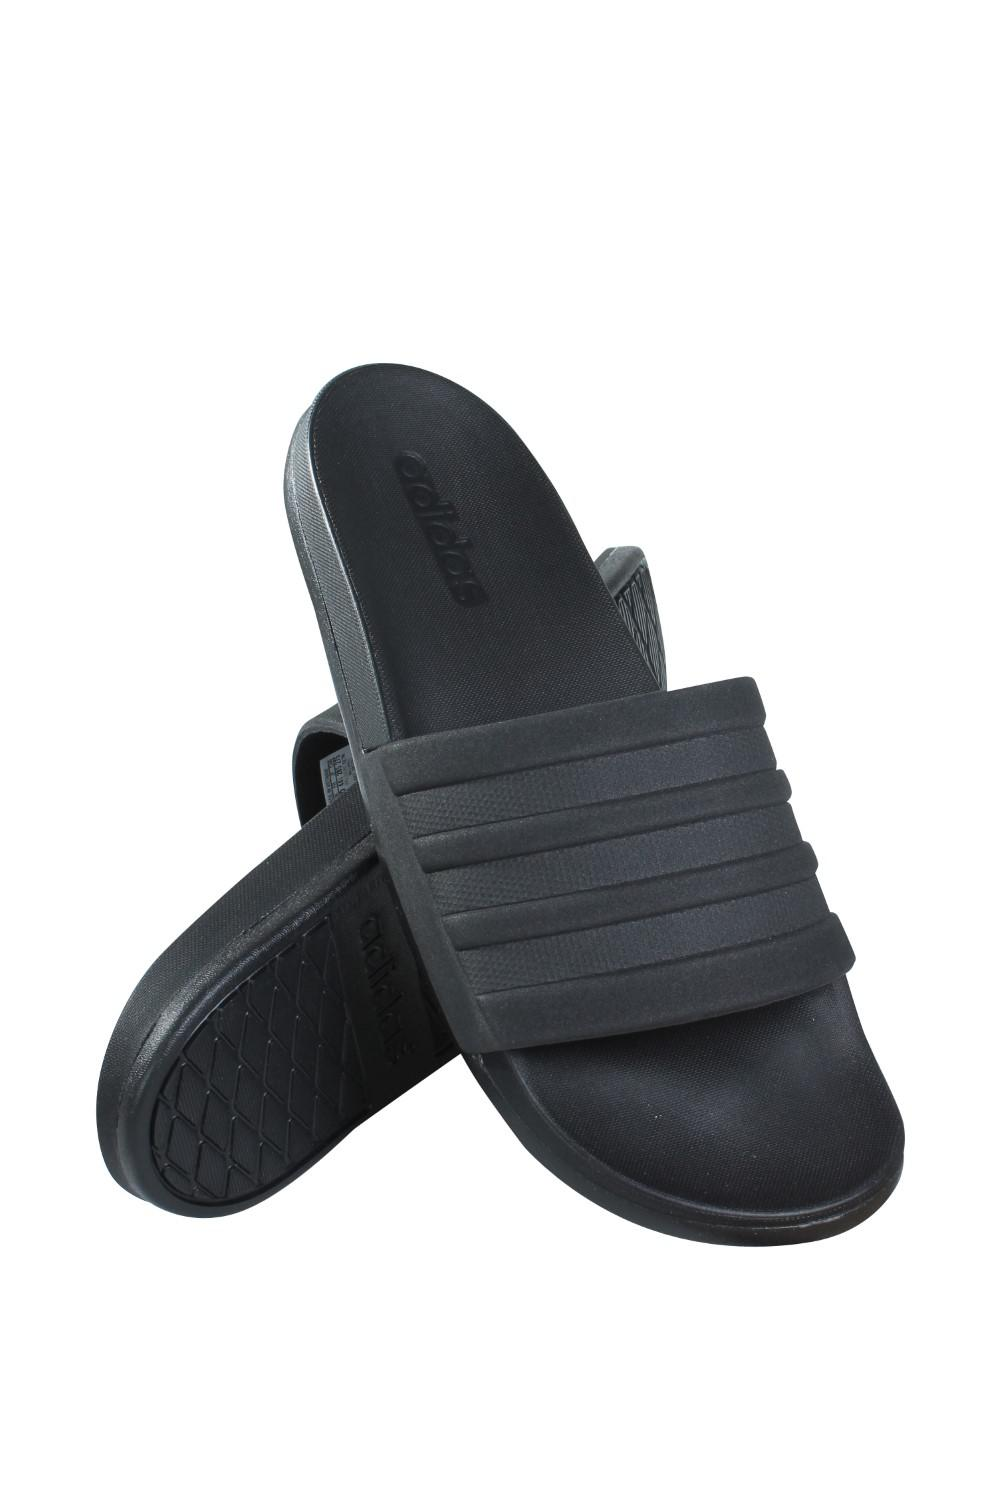 huge sale 873c3 145fd Lyst - adidas Originals Performance Adilette Cf+ Mono Slide